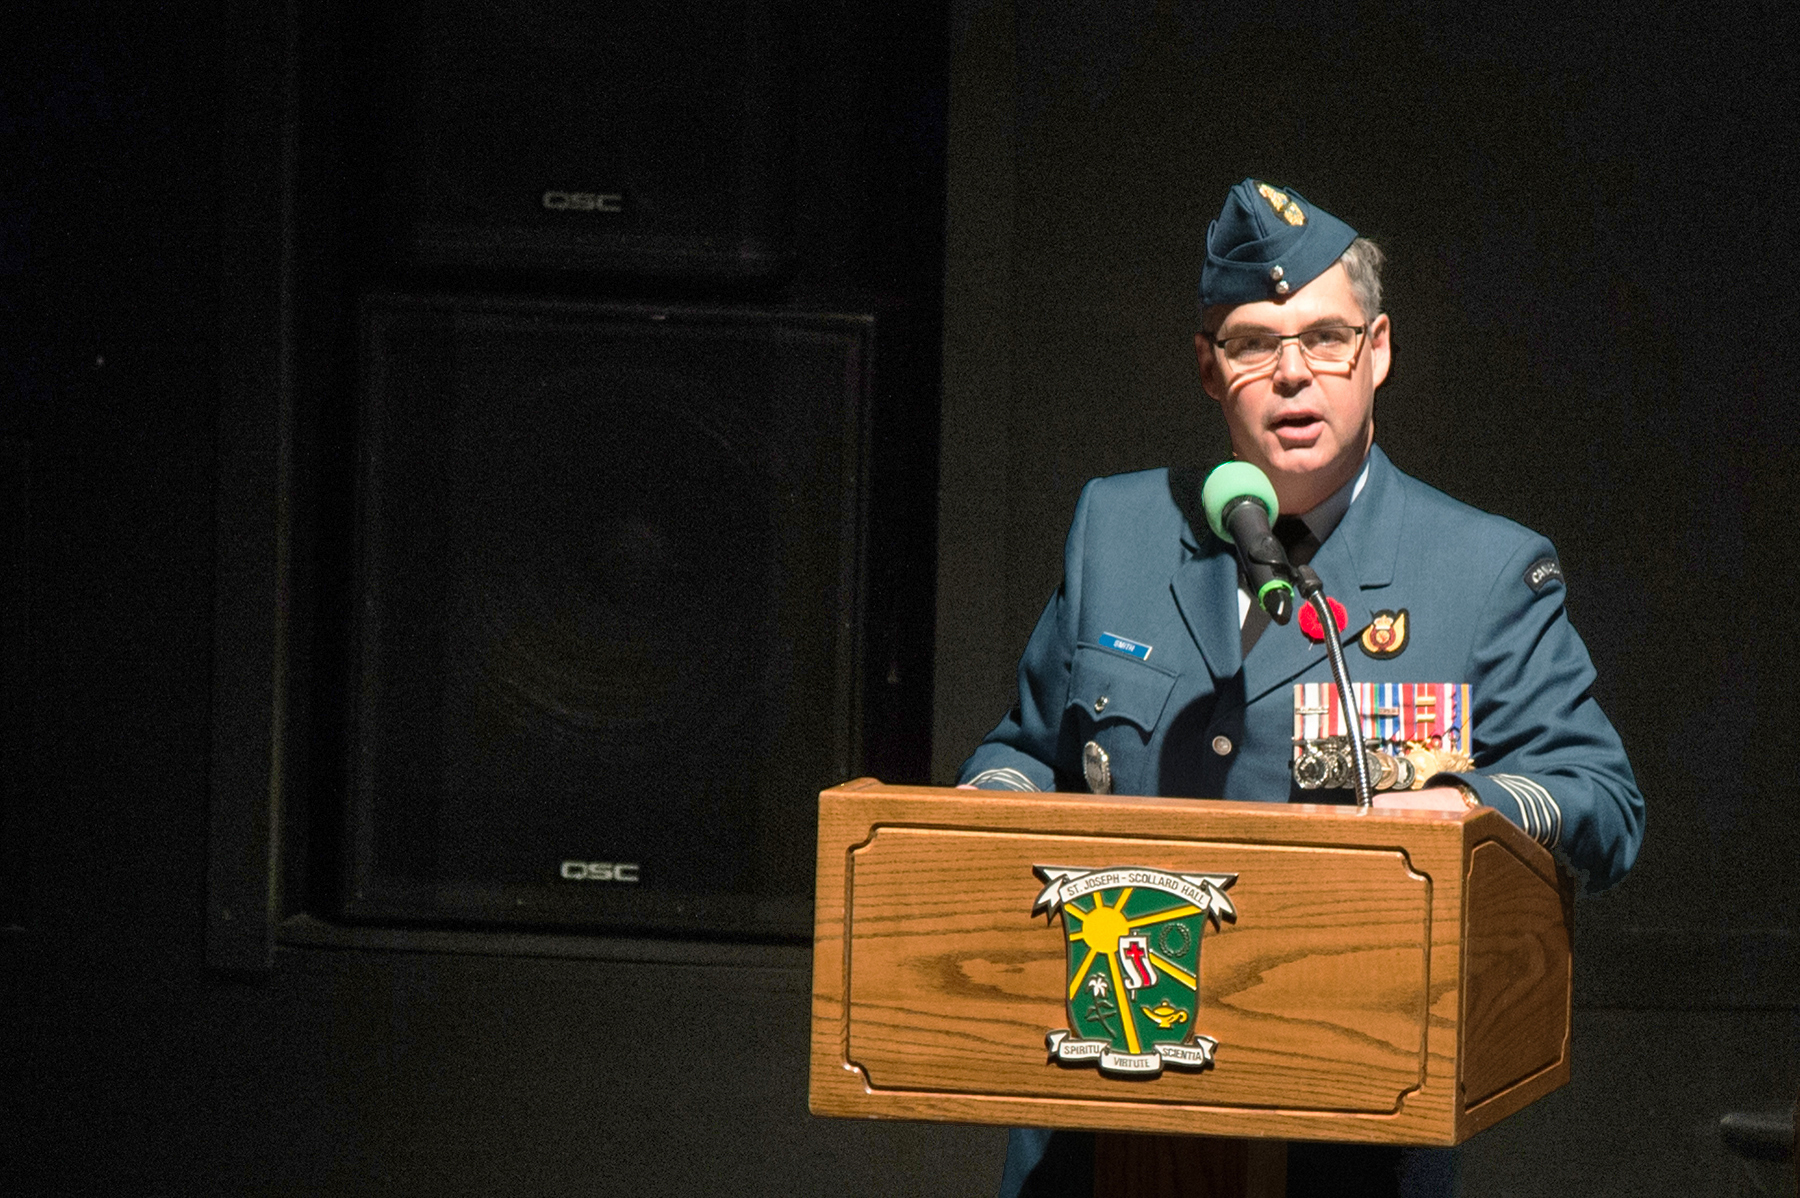 Colonel Henrik Smith, commander of 22 Wing North Bay, Ontario, speaks to the students of St. Joseph Scollard Hall high school in North Bay during the school's Remembrance Day assembly on November 10, 2016. All Canadian Armed Forces members are encouraged to give presentations at local schools or other community organizations under the Veterans' Week Speakers Program. PHOTO: Corporal Rob Ouellette